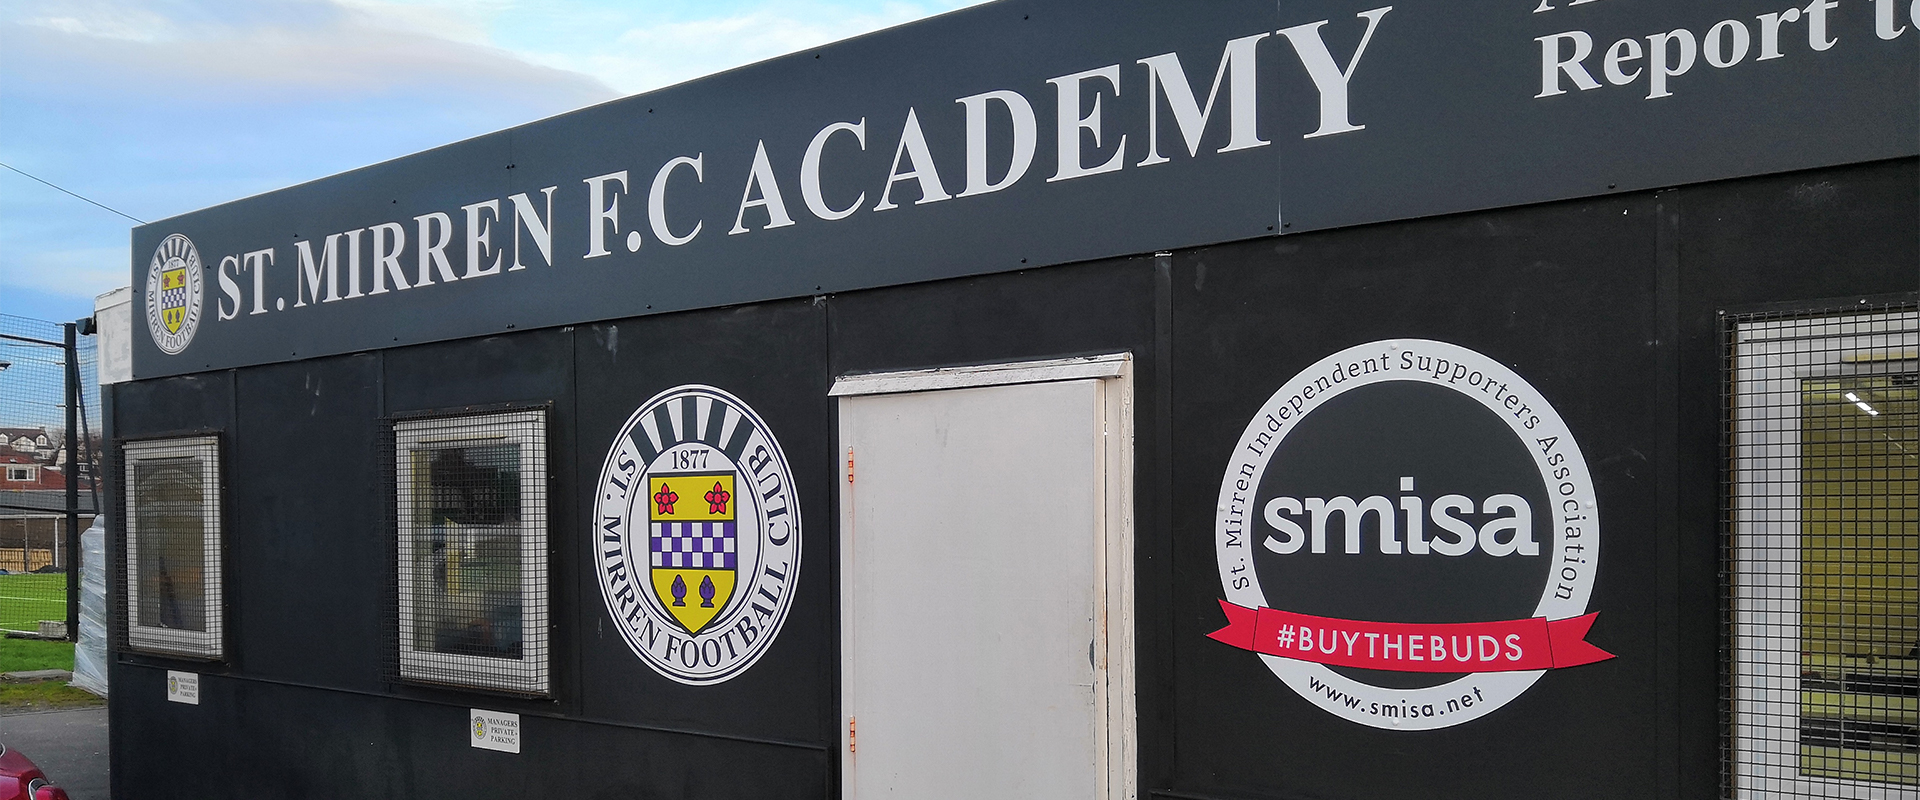 SMiSA sponsors the St.Mirren Academy